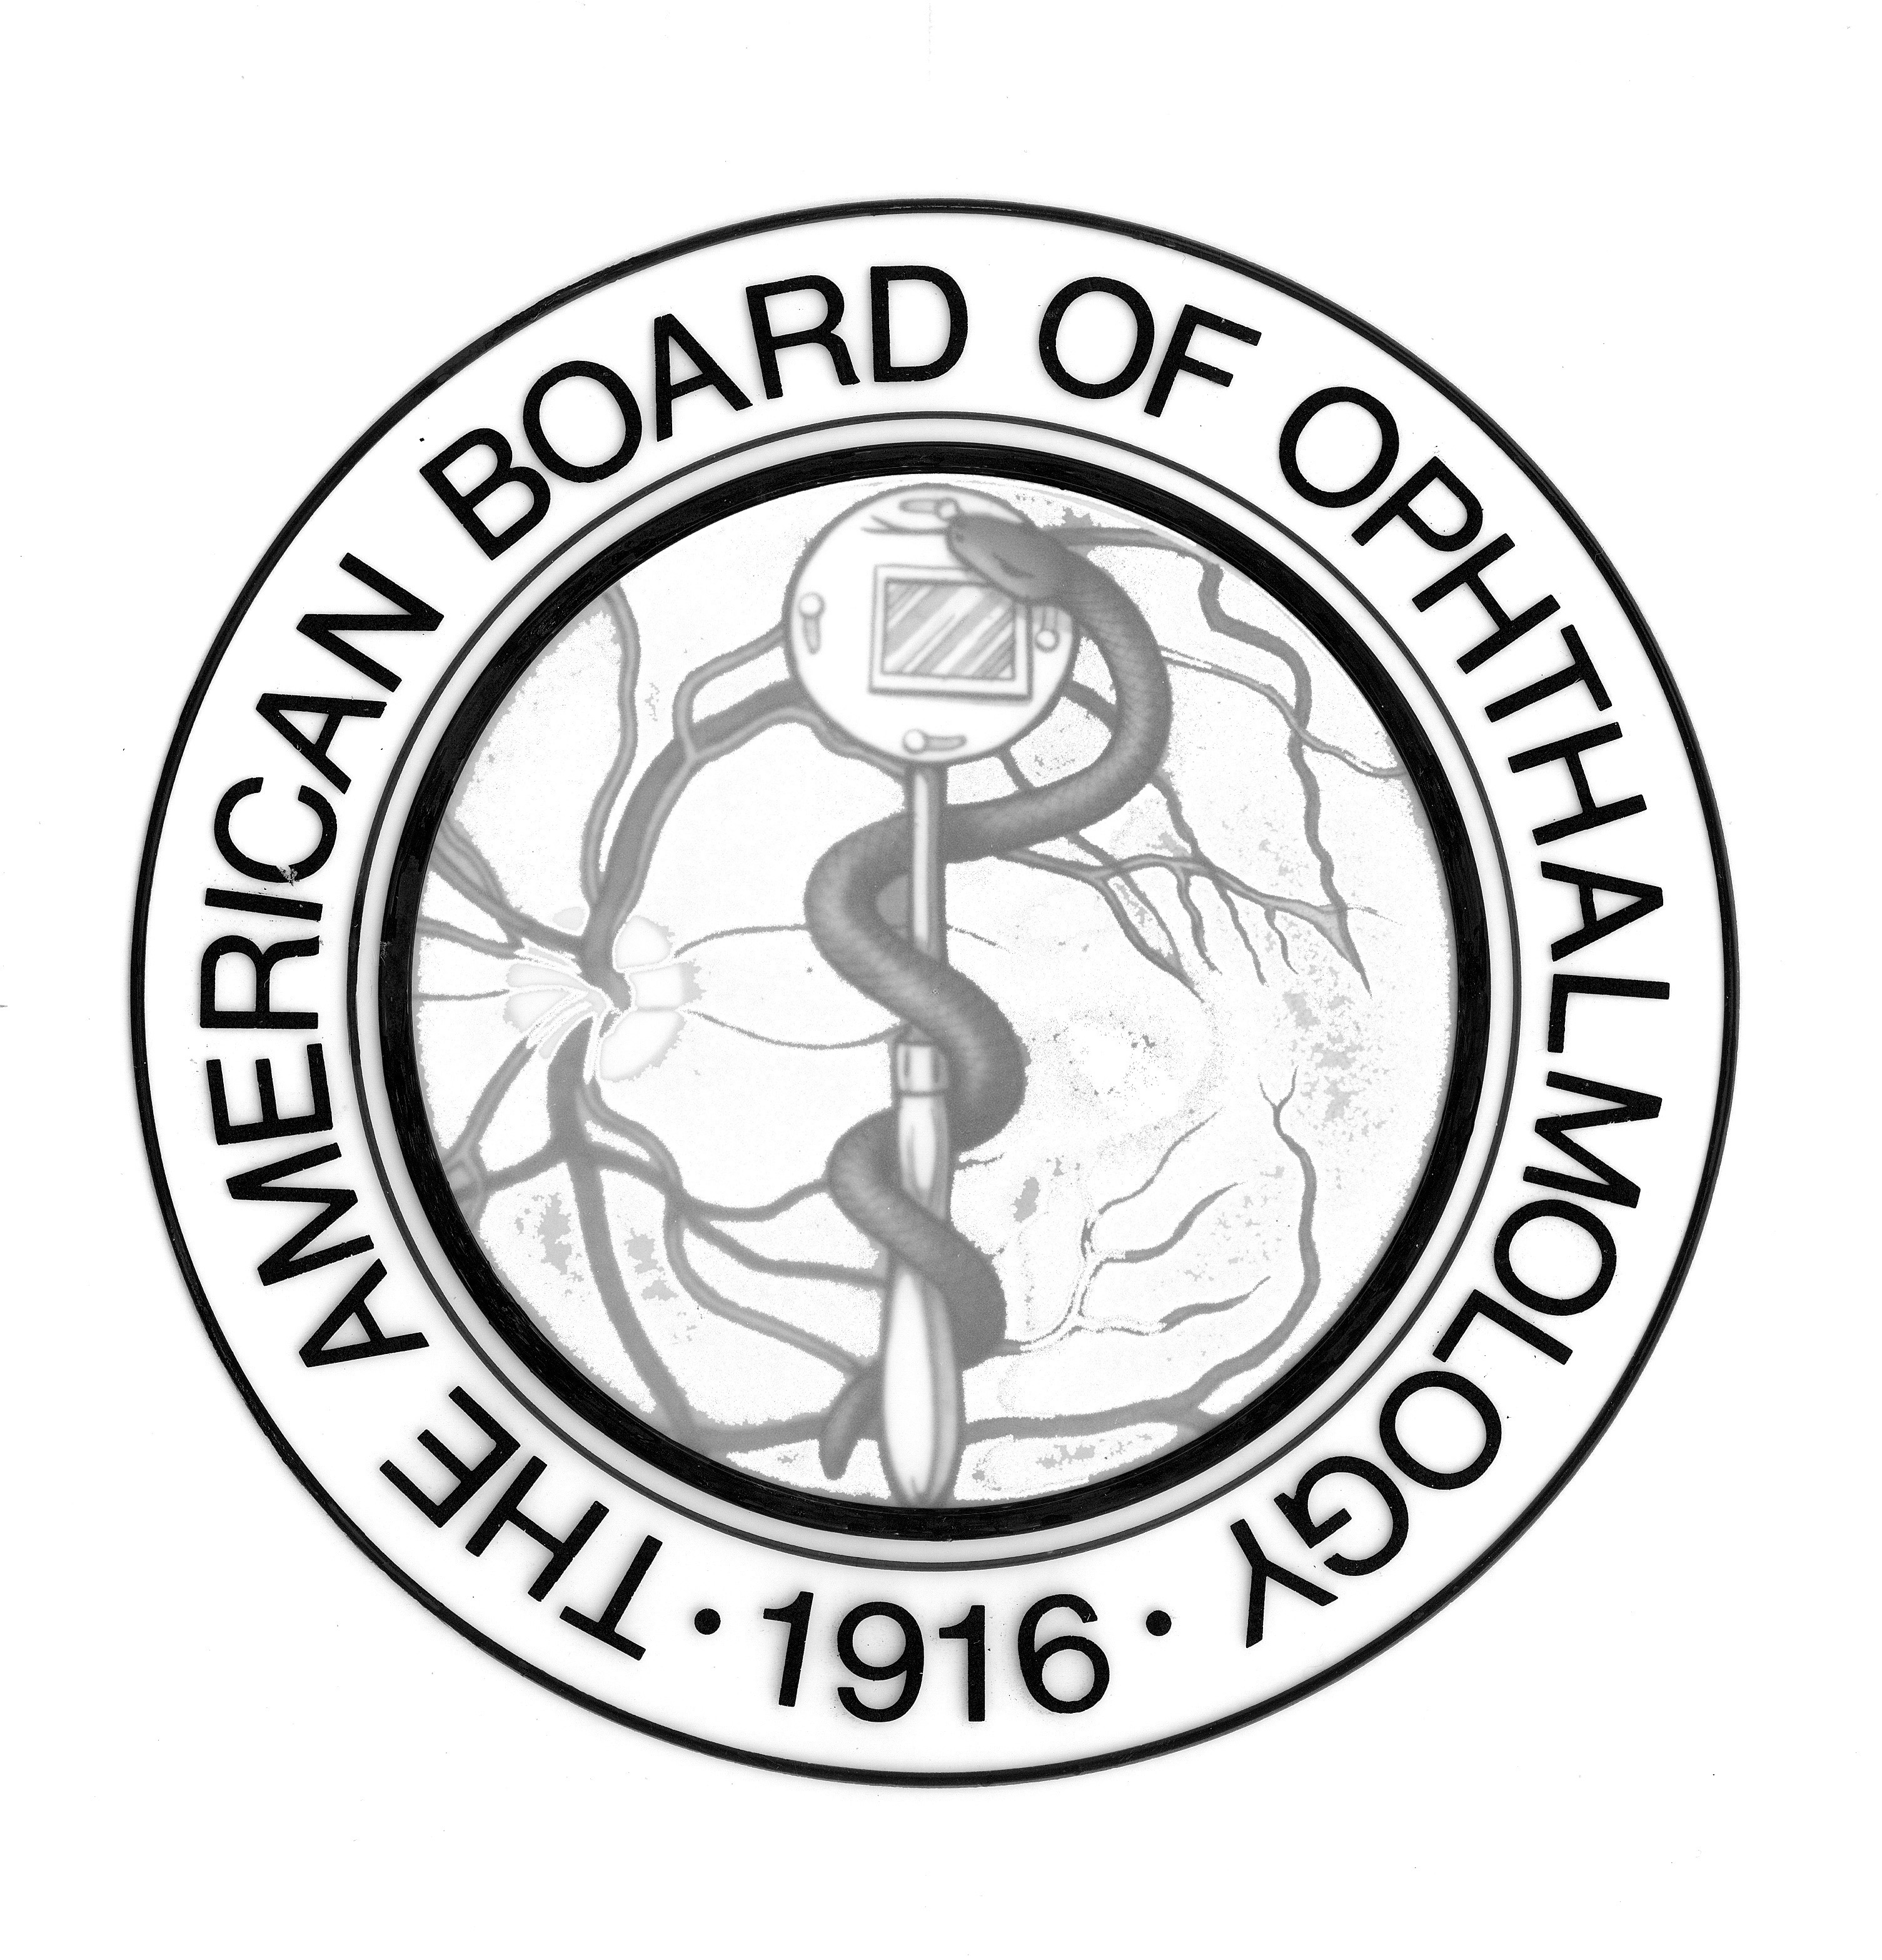 American Board of Ophthalmology (ABOP)